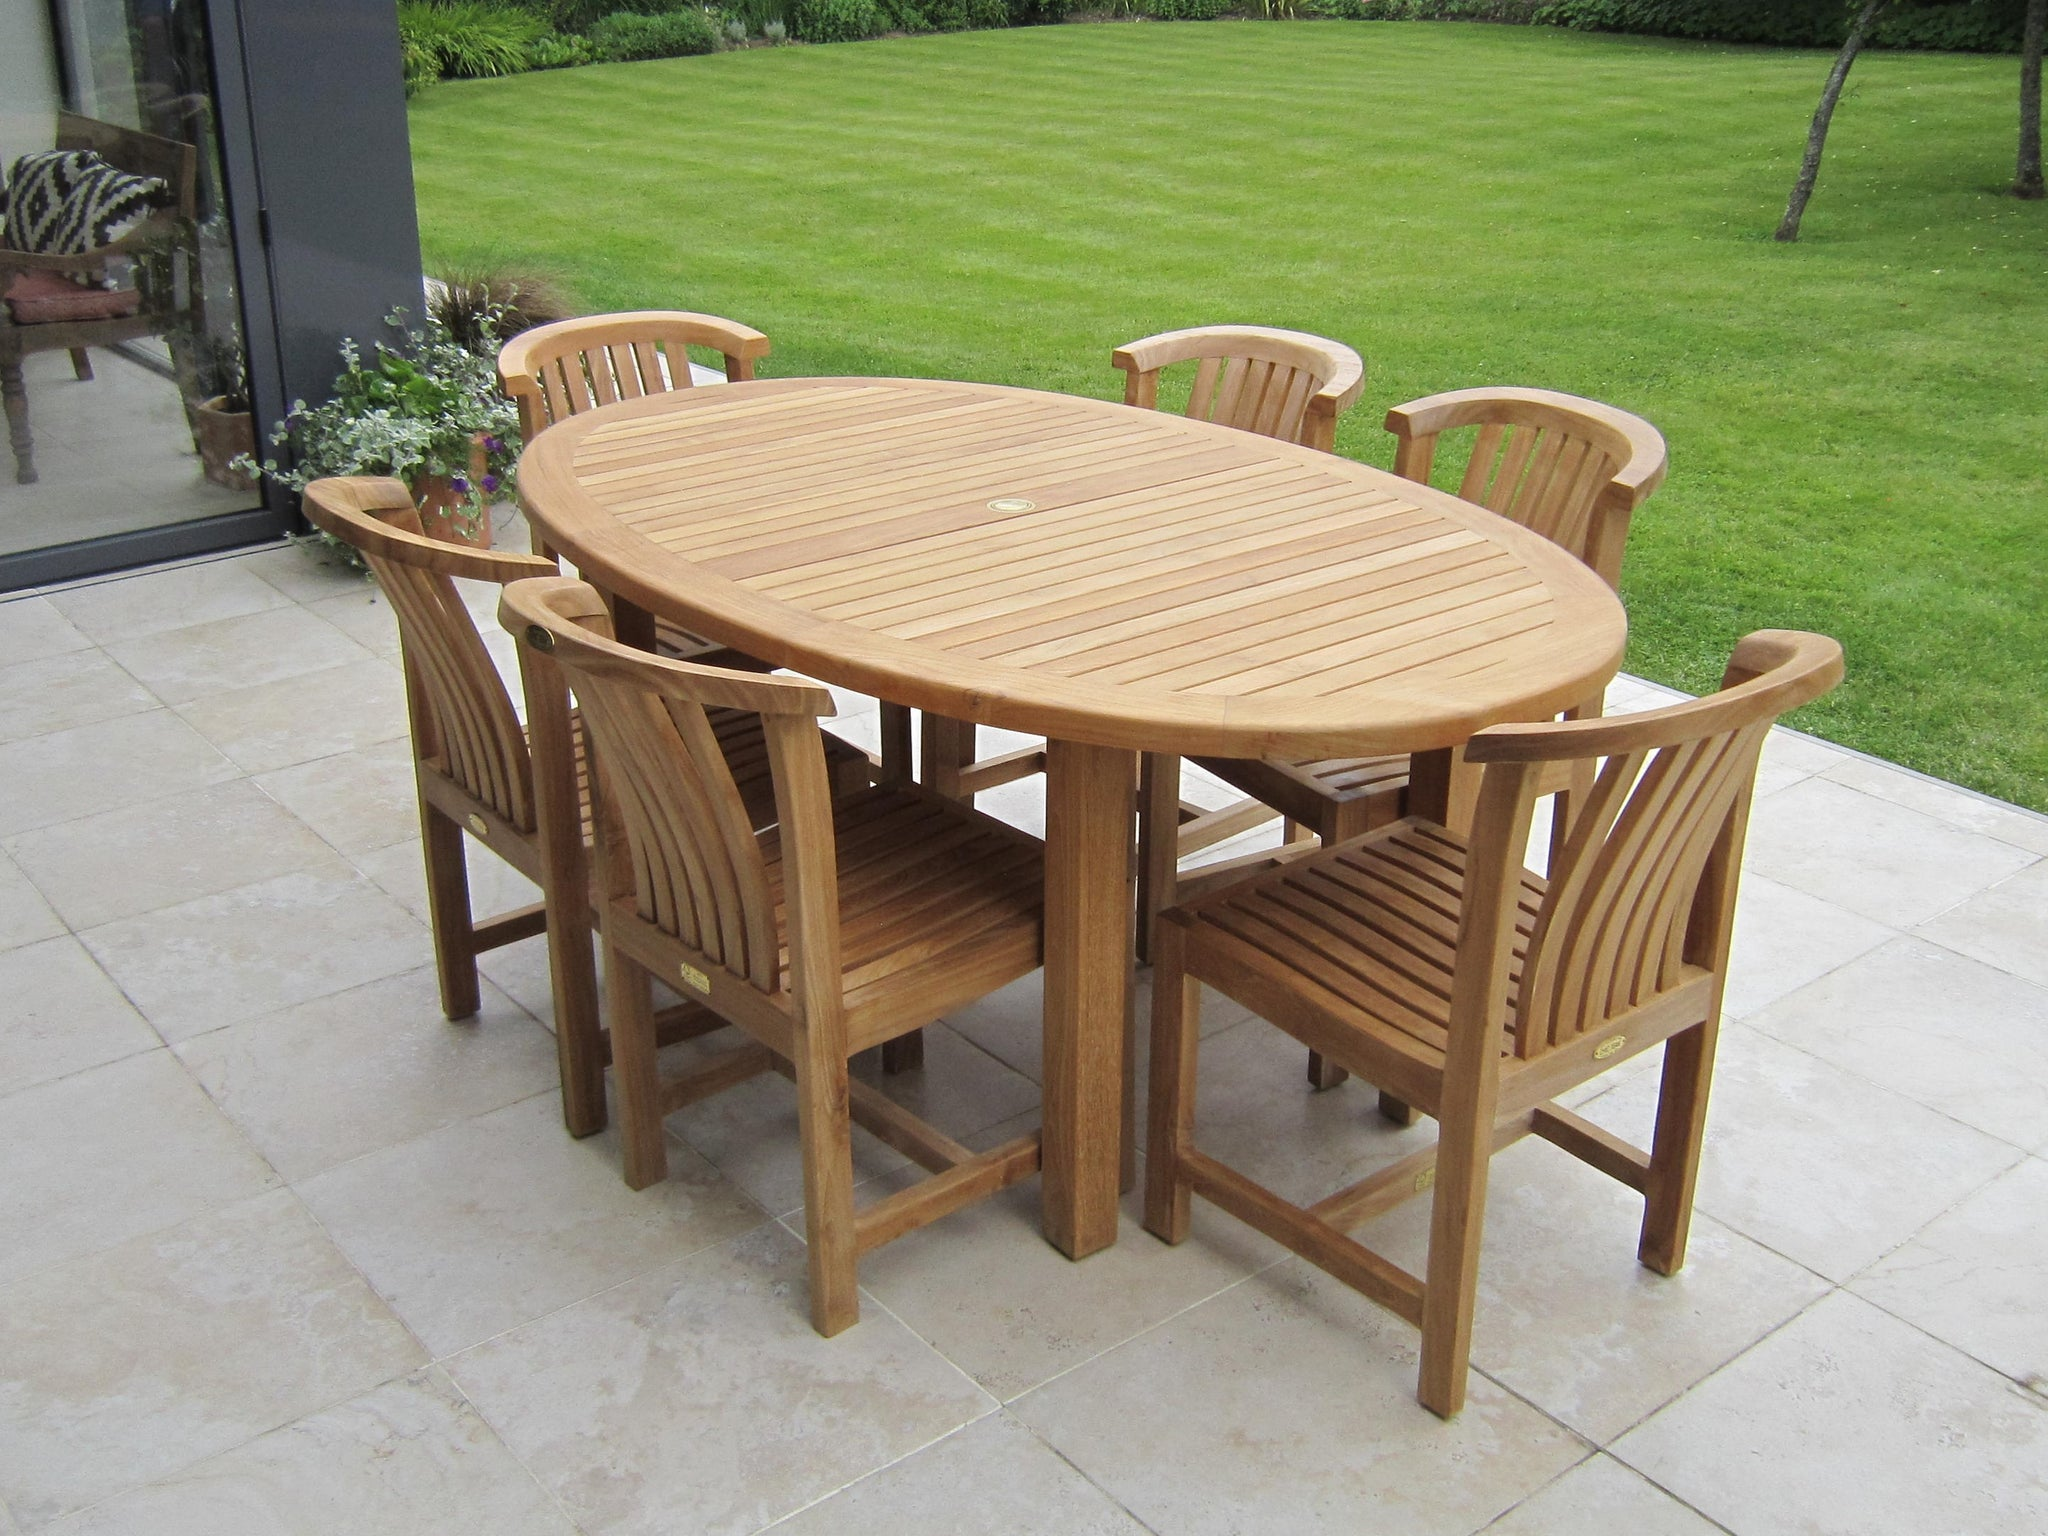 Teak oval garden dining table & chair set